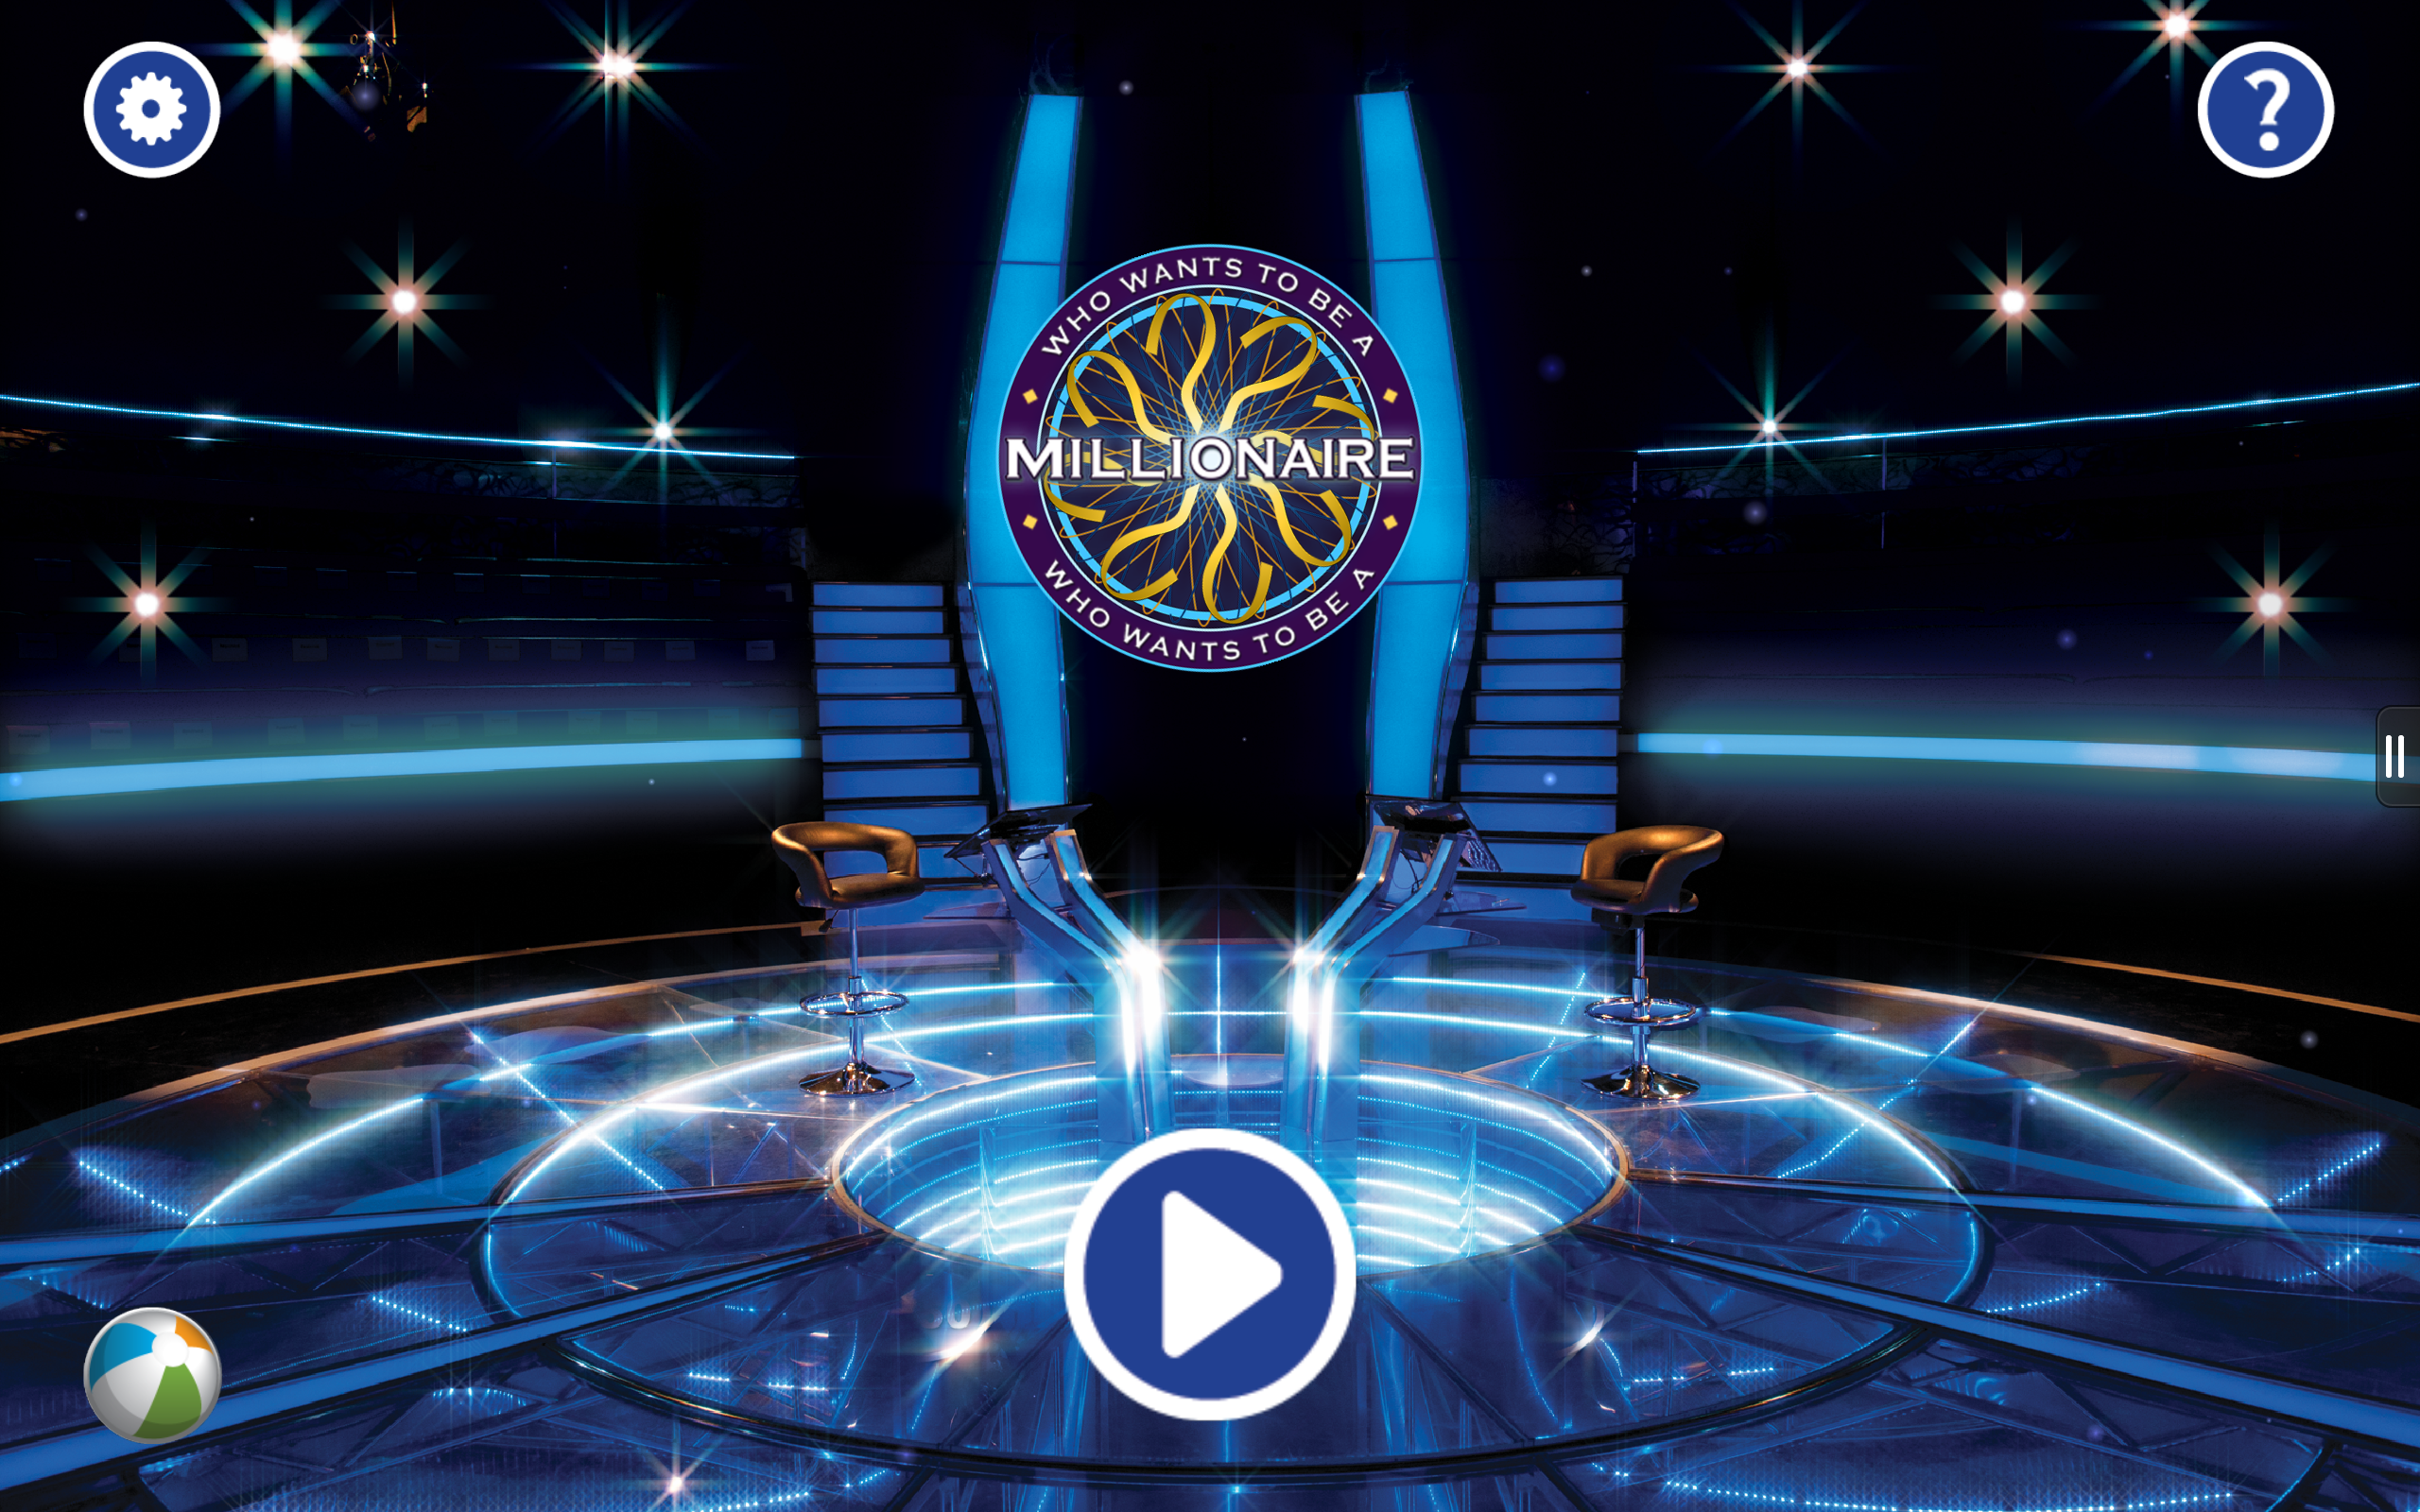 Amazon.com: Who Wants To Be A Millionaire? 2014: Appstore for Android